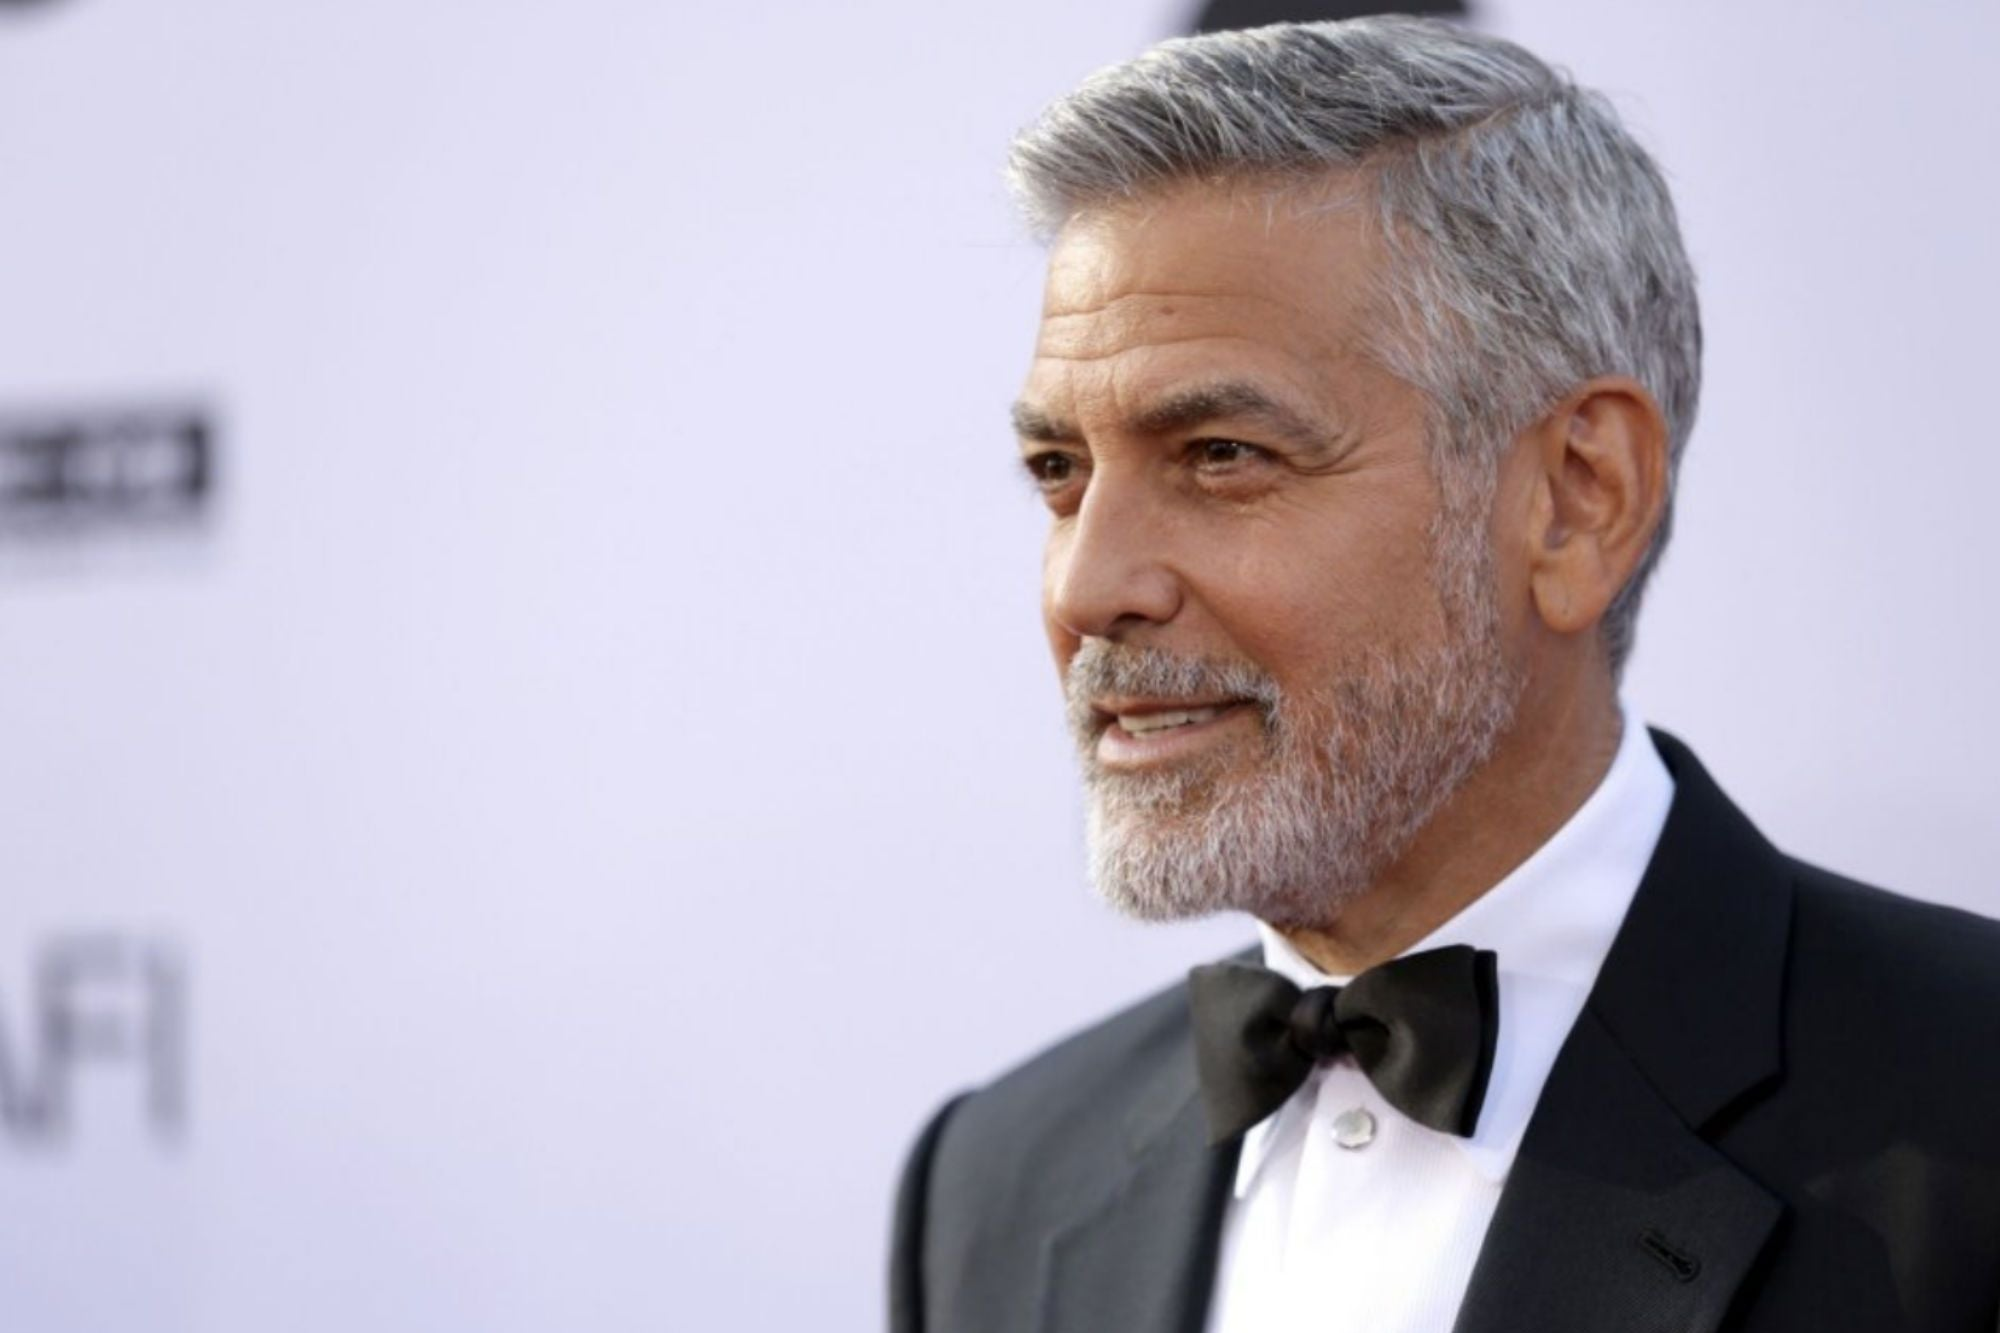 George Clooney grew a big beard and lost 30 pounds dramatically and he is in а very serious health condition